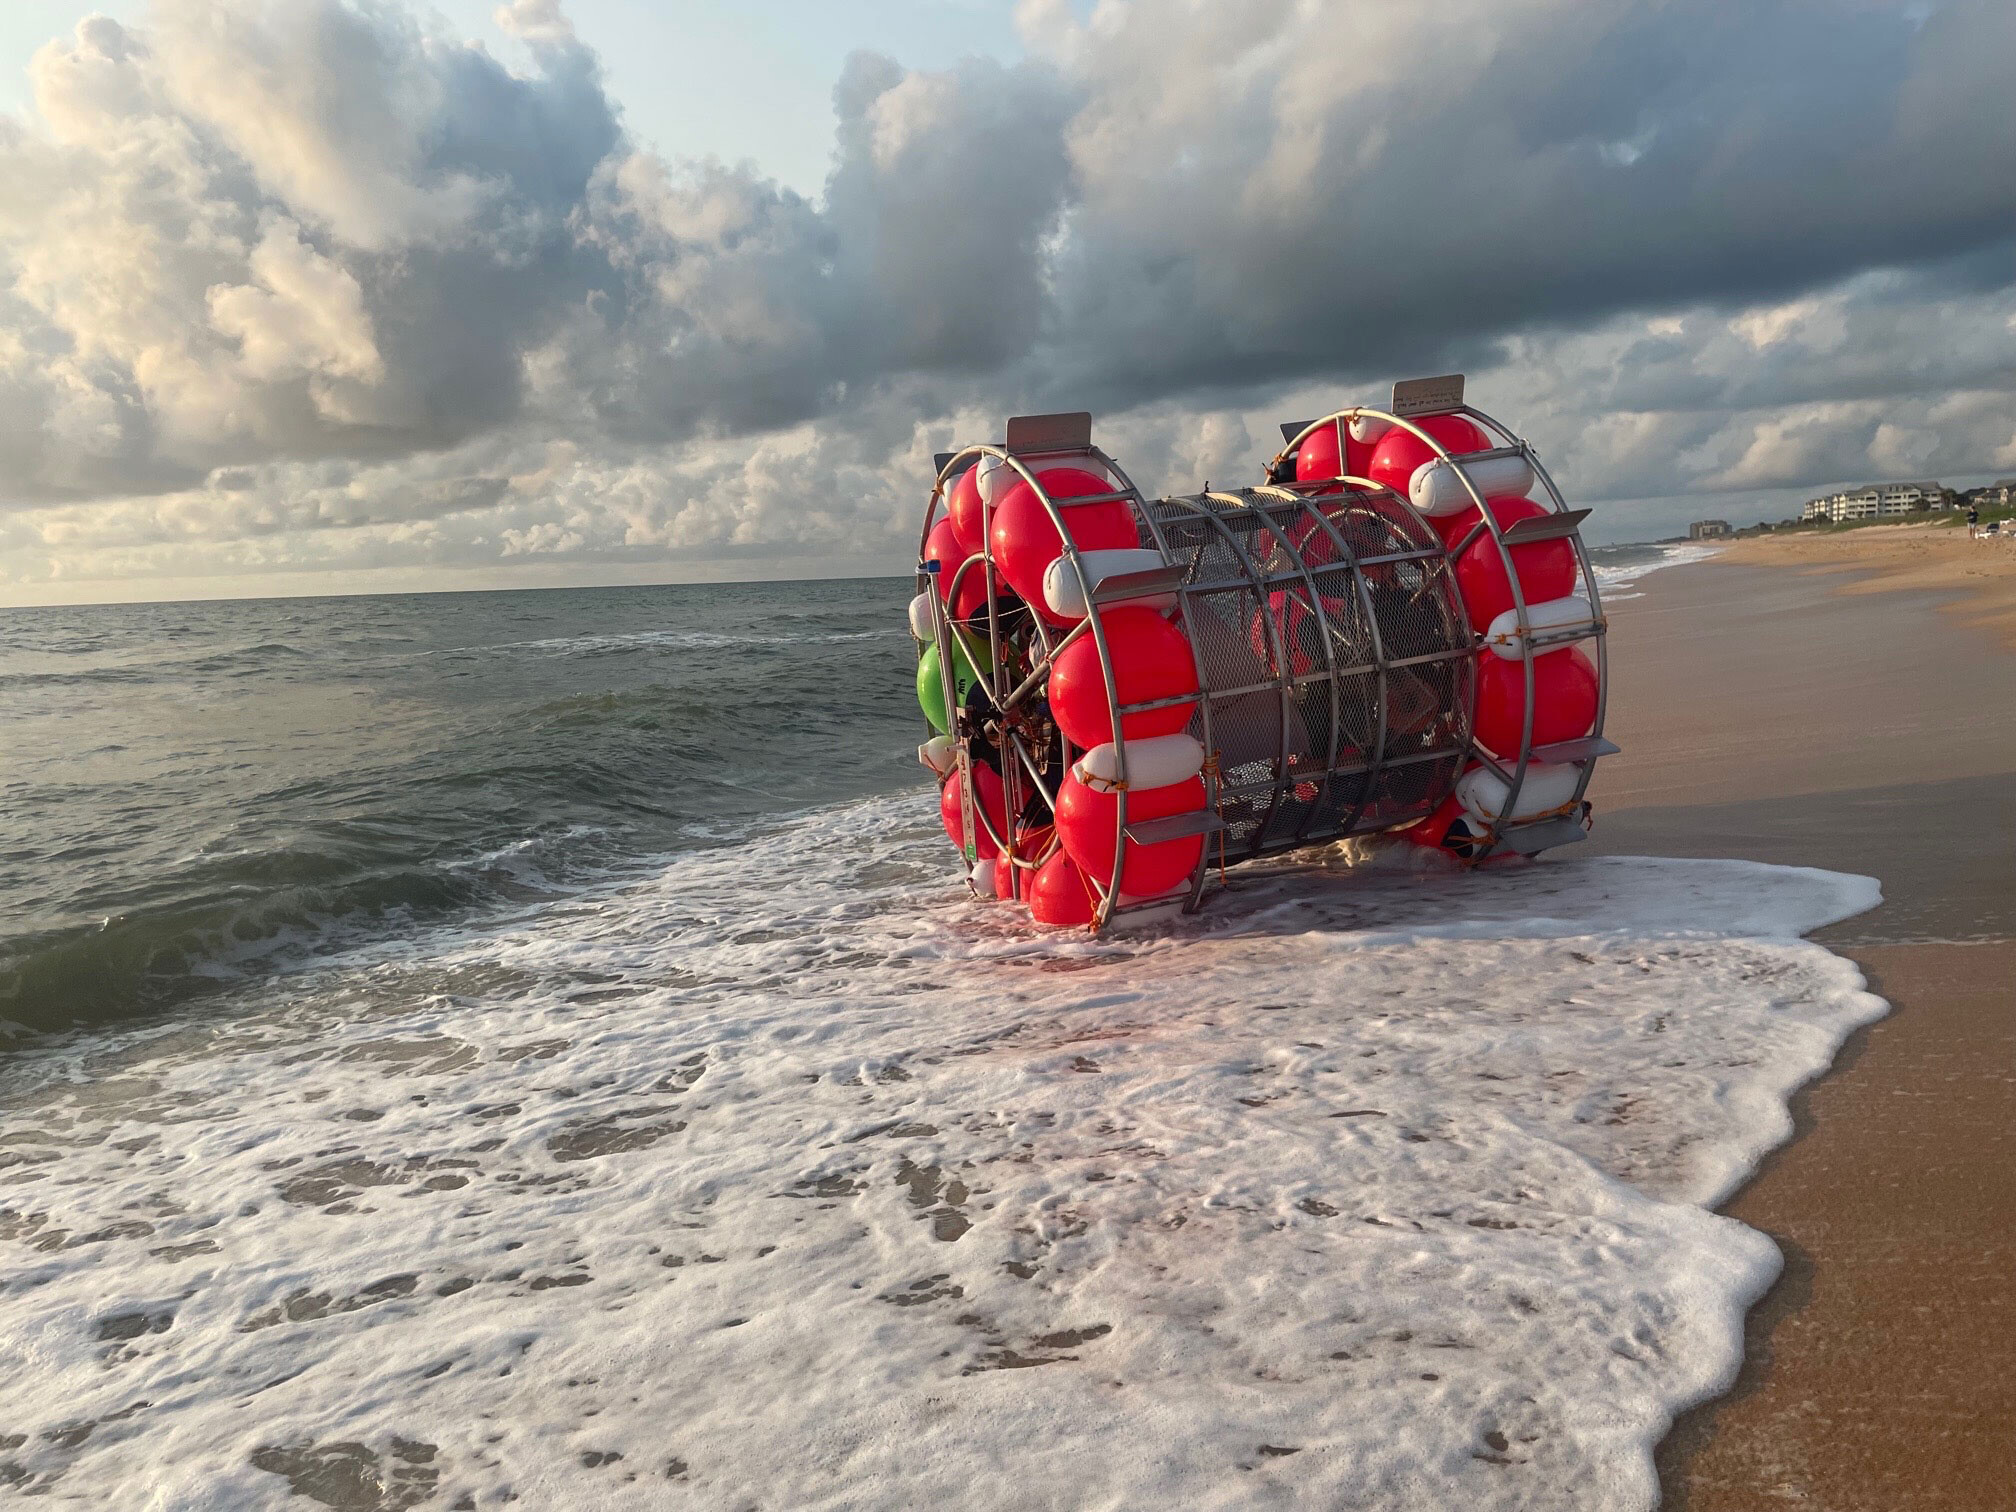 <i>Flagler County Sheriff's Office</i><br/>Baluchi brought his bubble vessel back to shore on July 24 because of equipment issues.